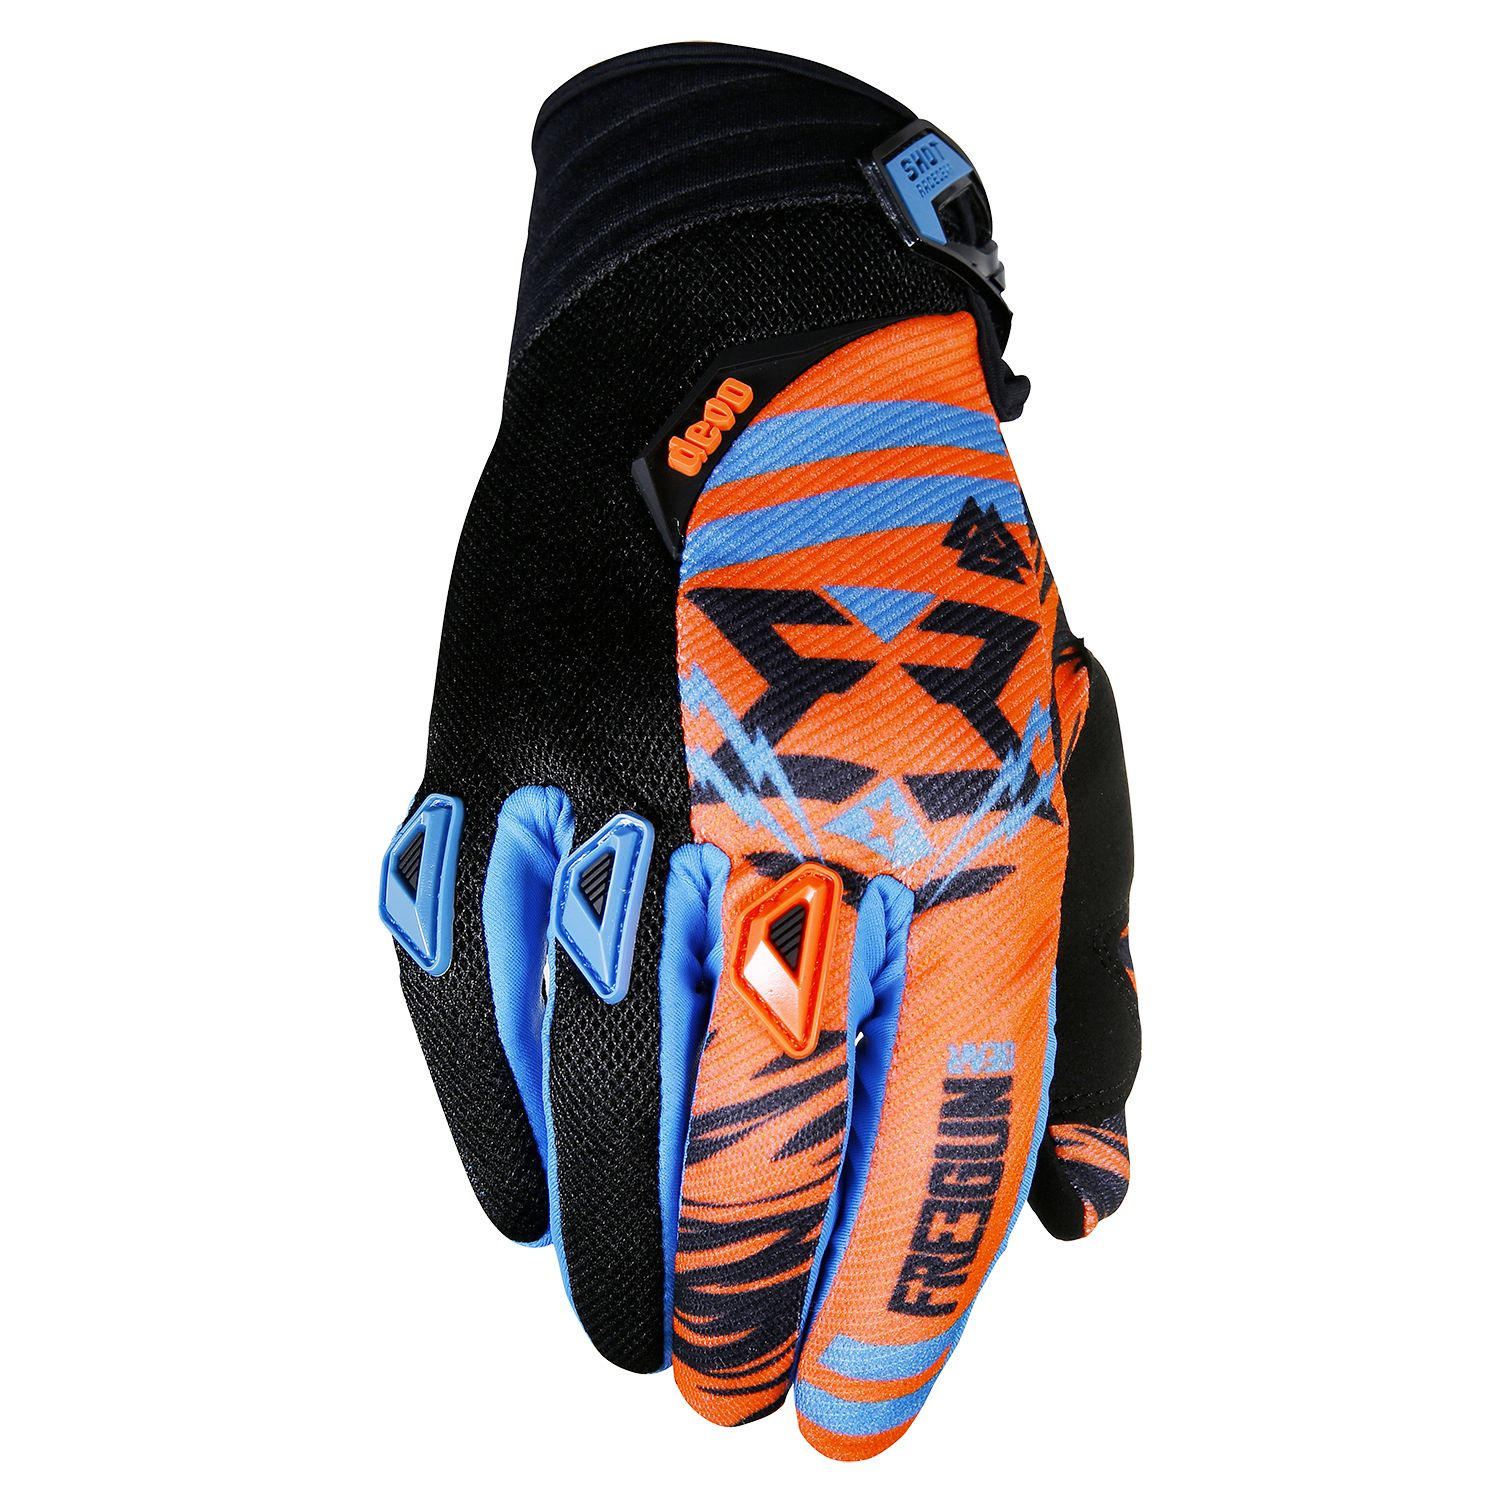 Gants cross Shot destockage DEVO TROOPER NEON ORANGE CYAN ENFANT